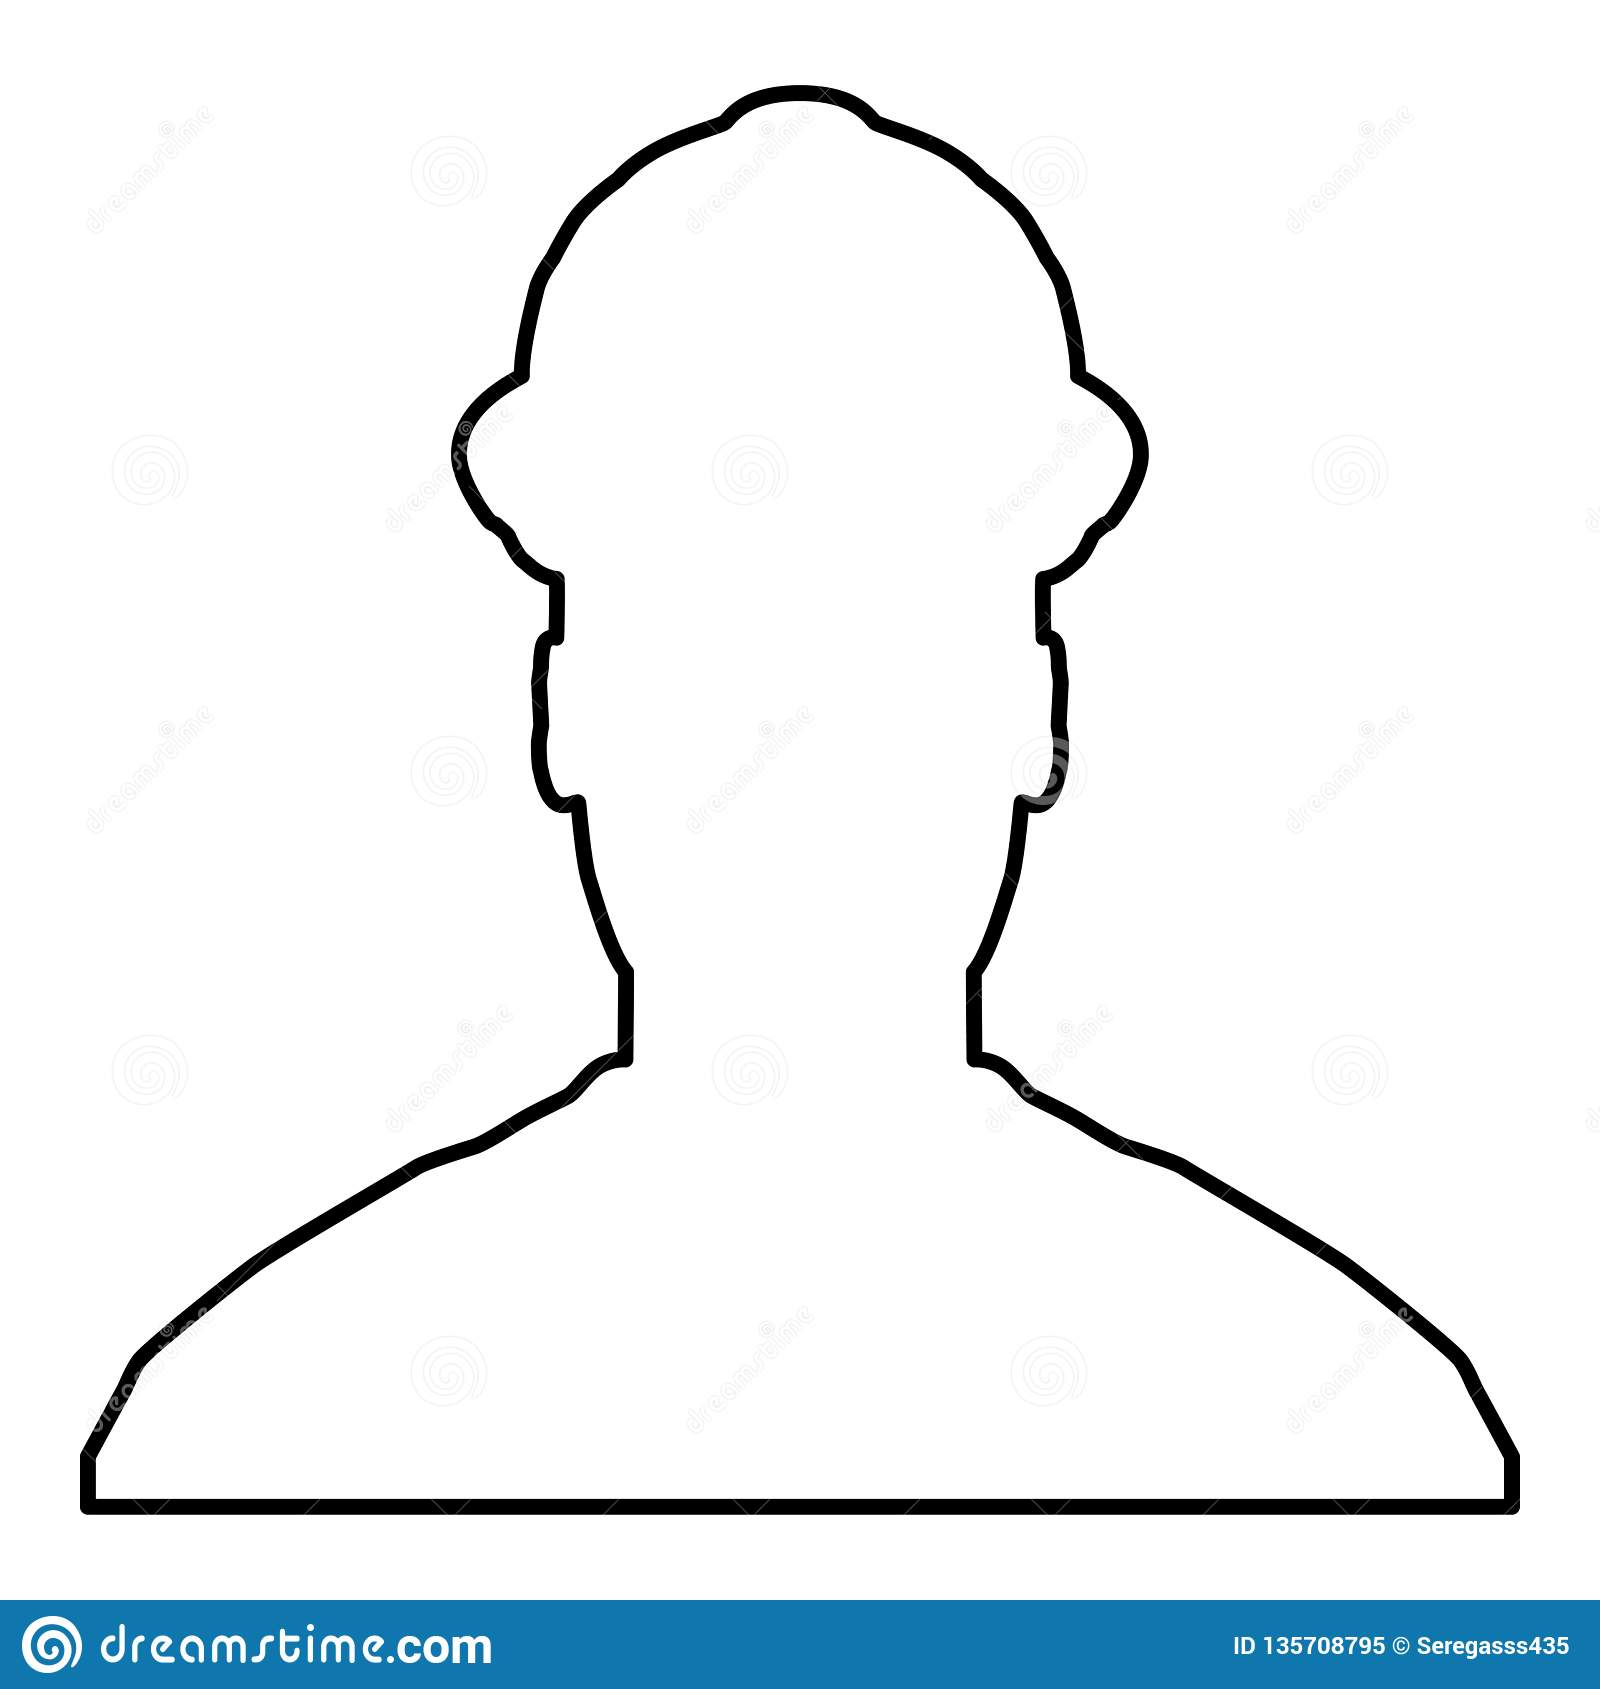 Avatar builder architect engineer in helmet view icon black color vector illustration flat style image